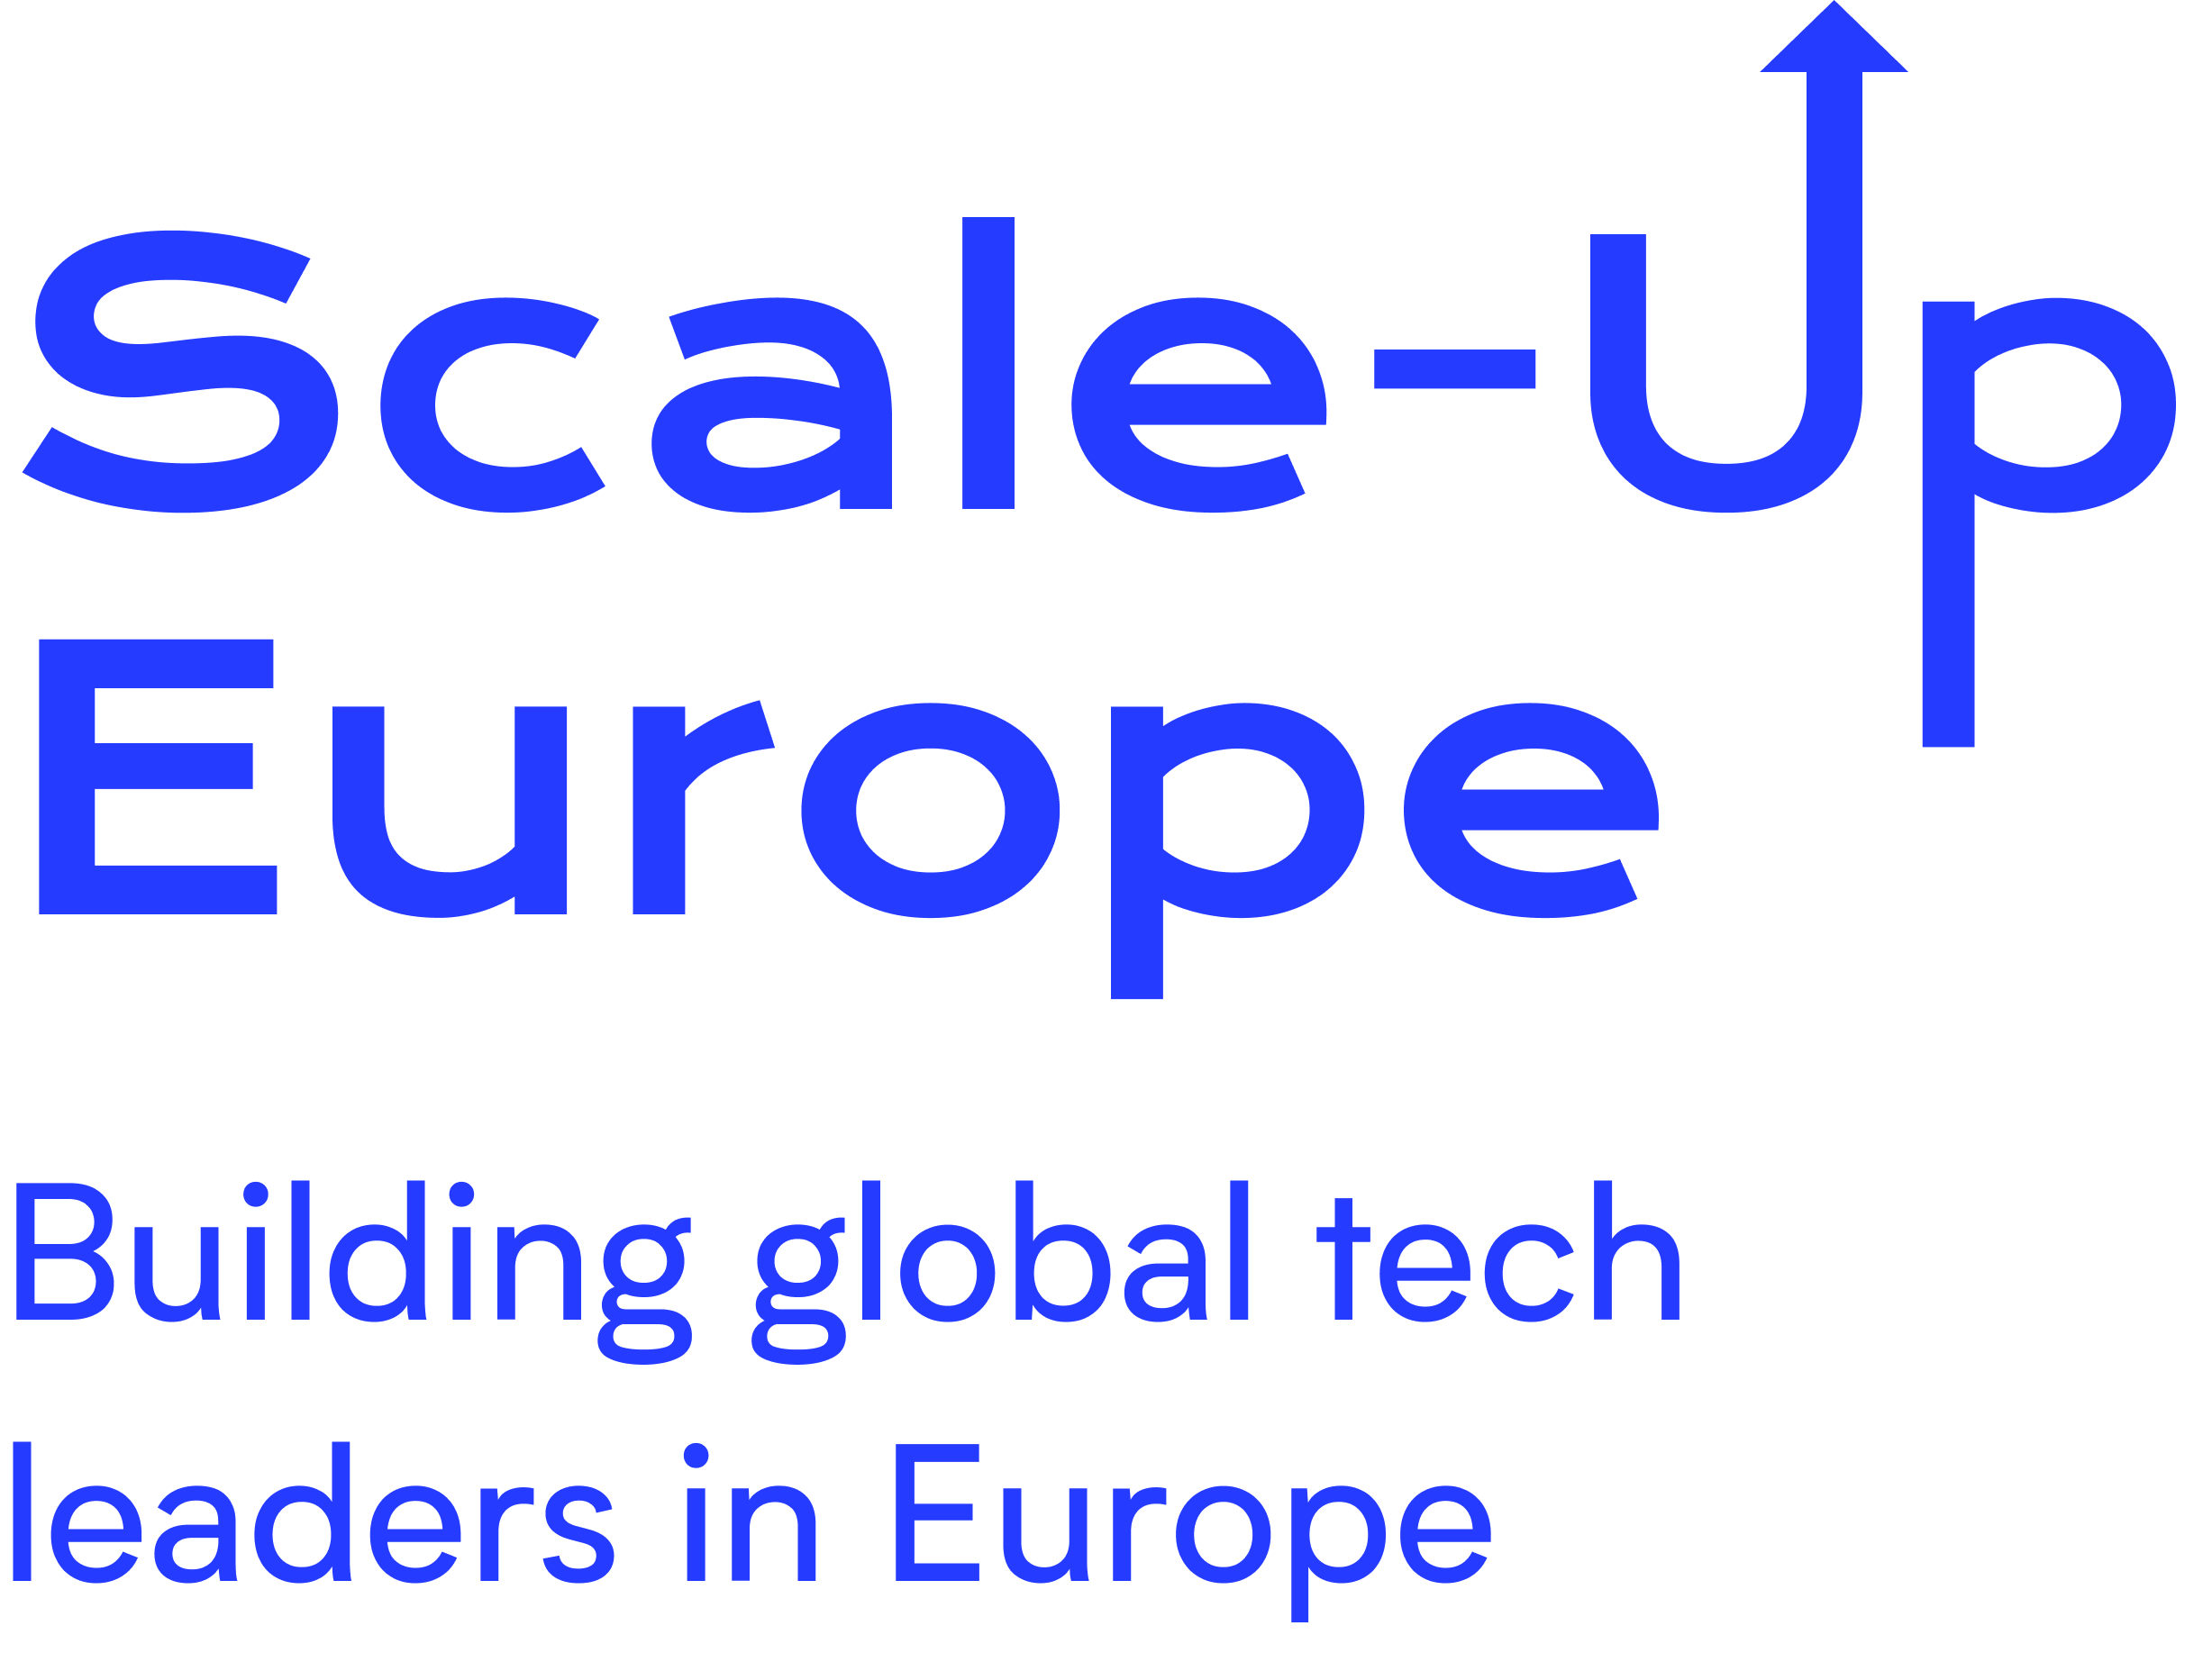 Scale Up Europe